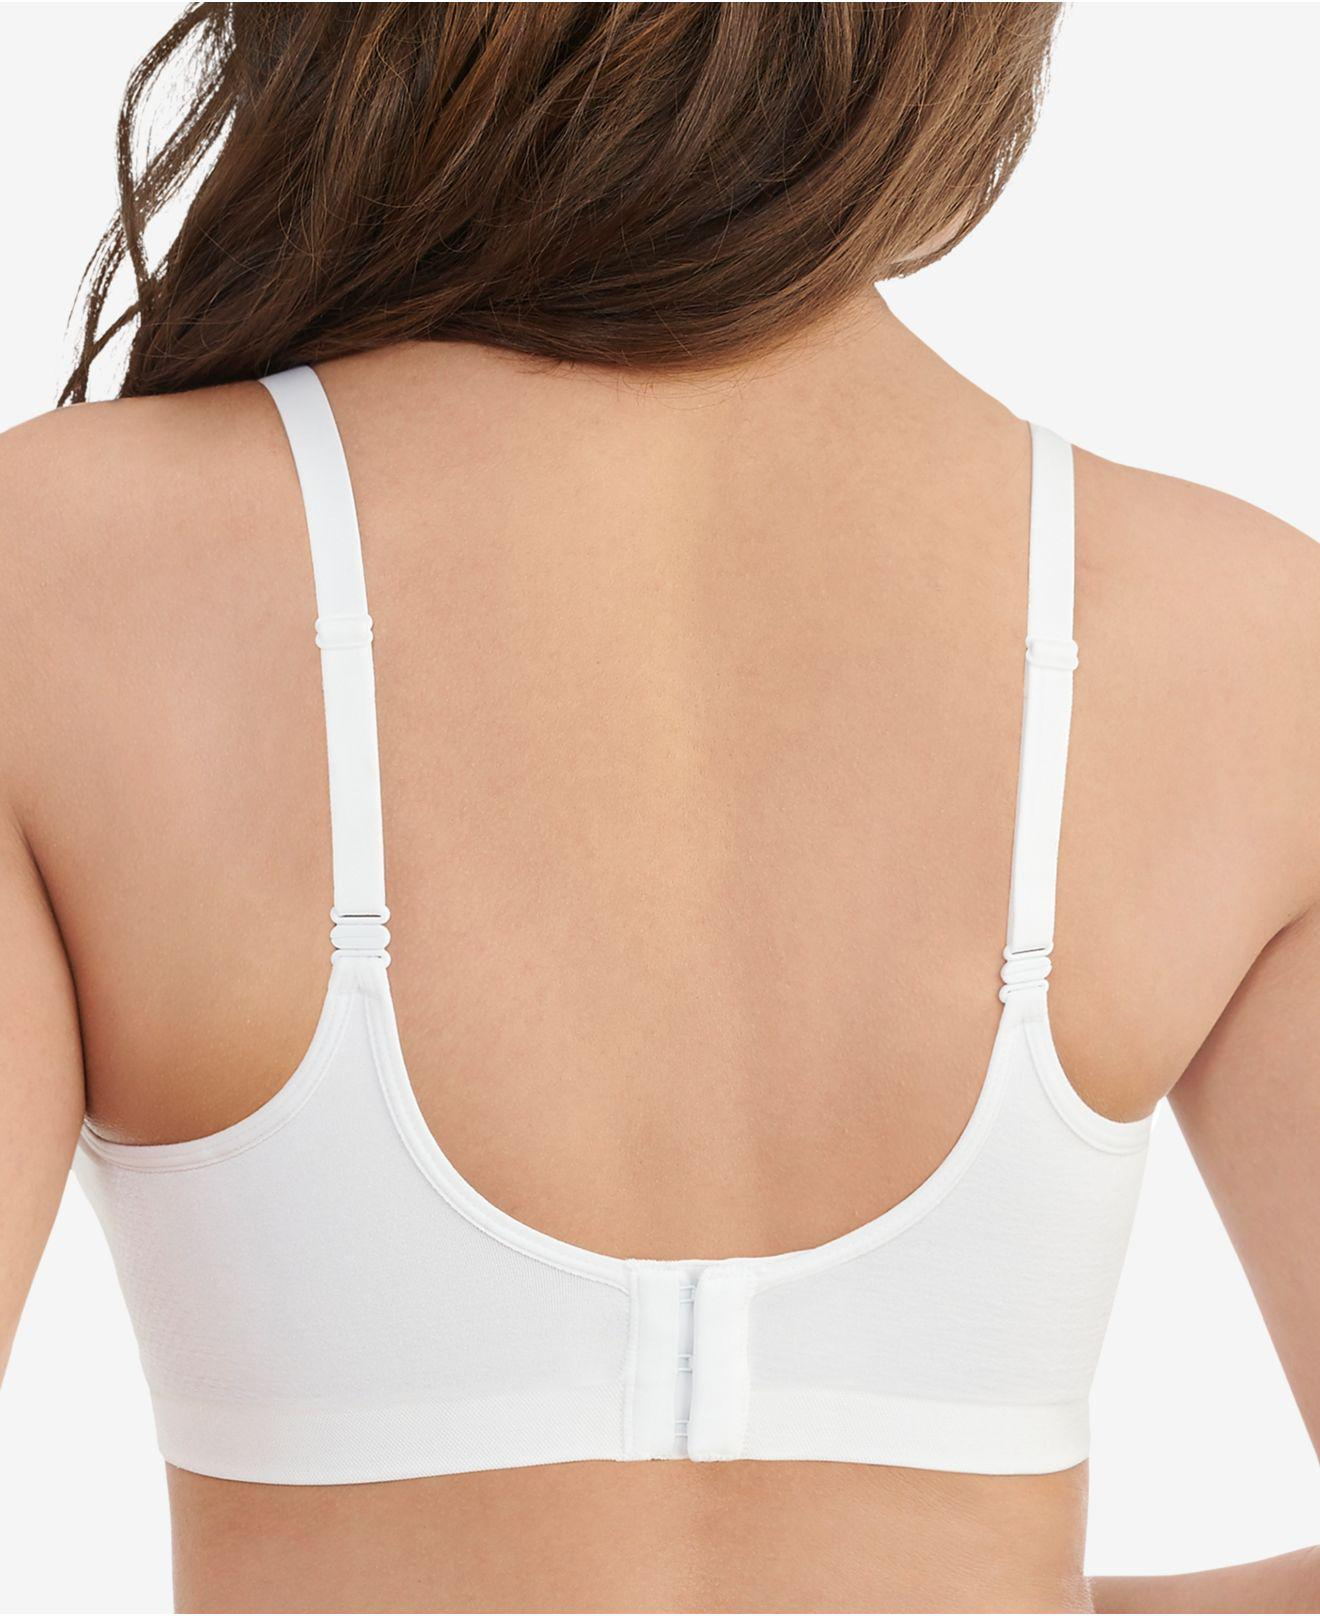 36eb3b2a5dad2 Lyst - Vanity Fair Breathable Luxe Seamless Comfort Wirefree Bra 72219 in  White - Save 42.5%